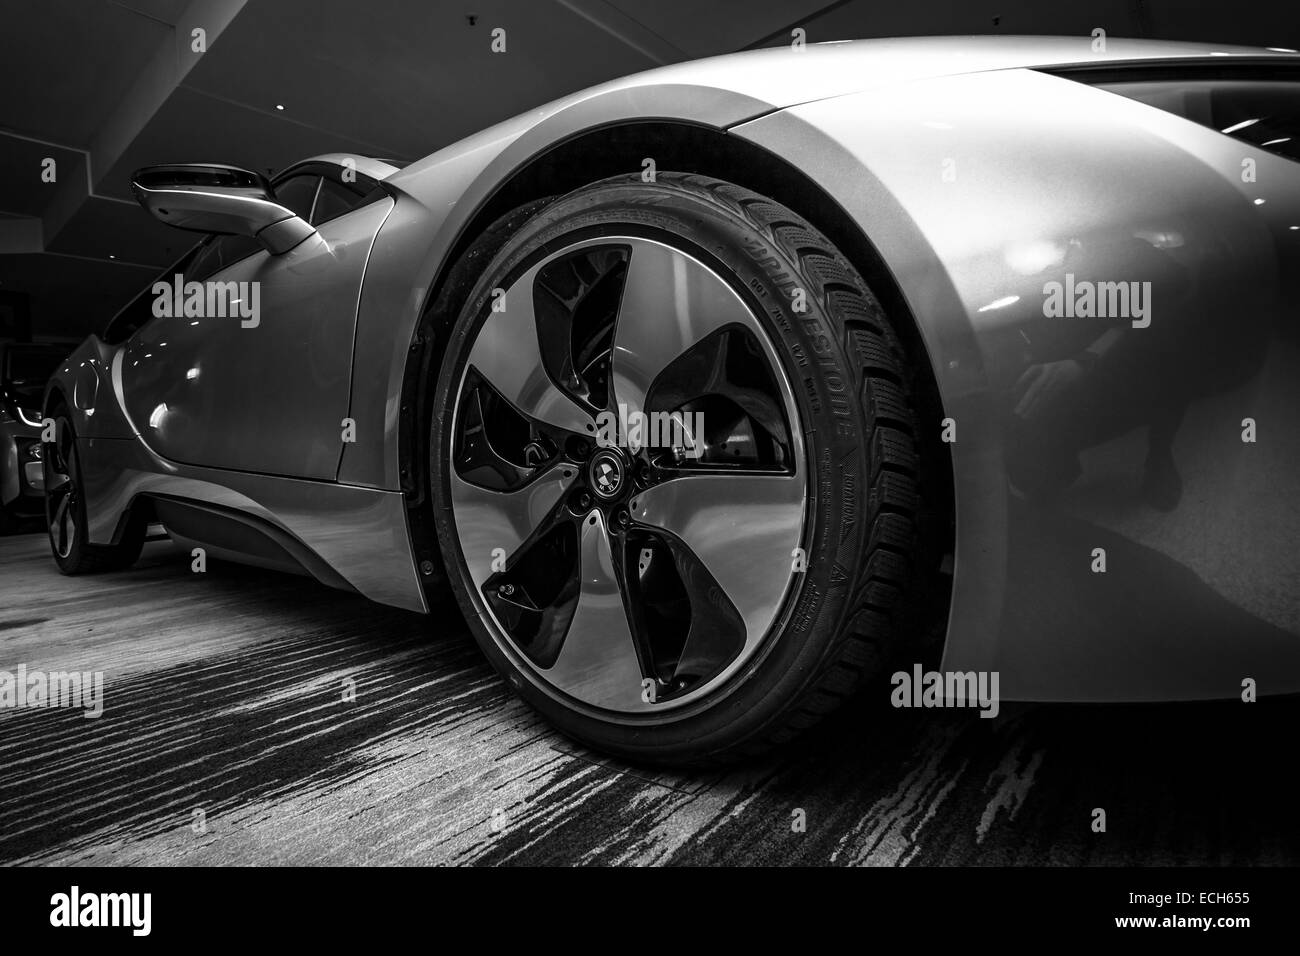 Showroom. BMW i8 - Stock Image